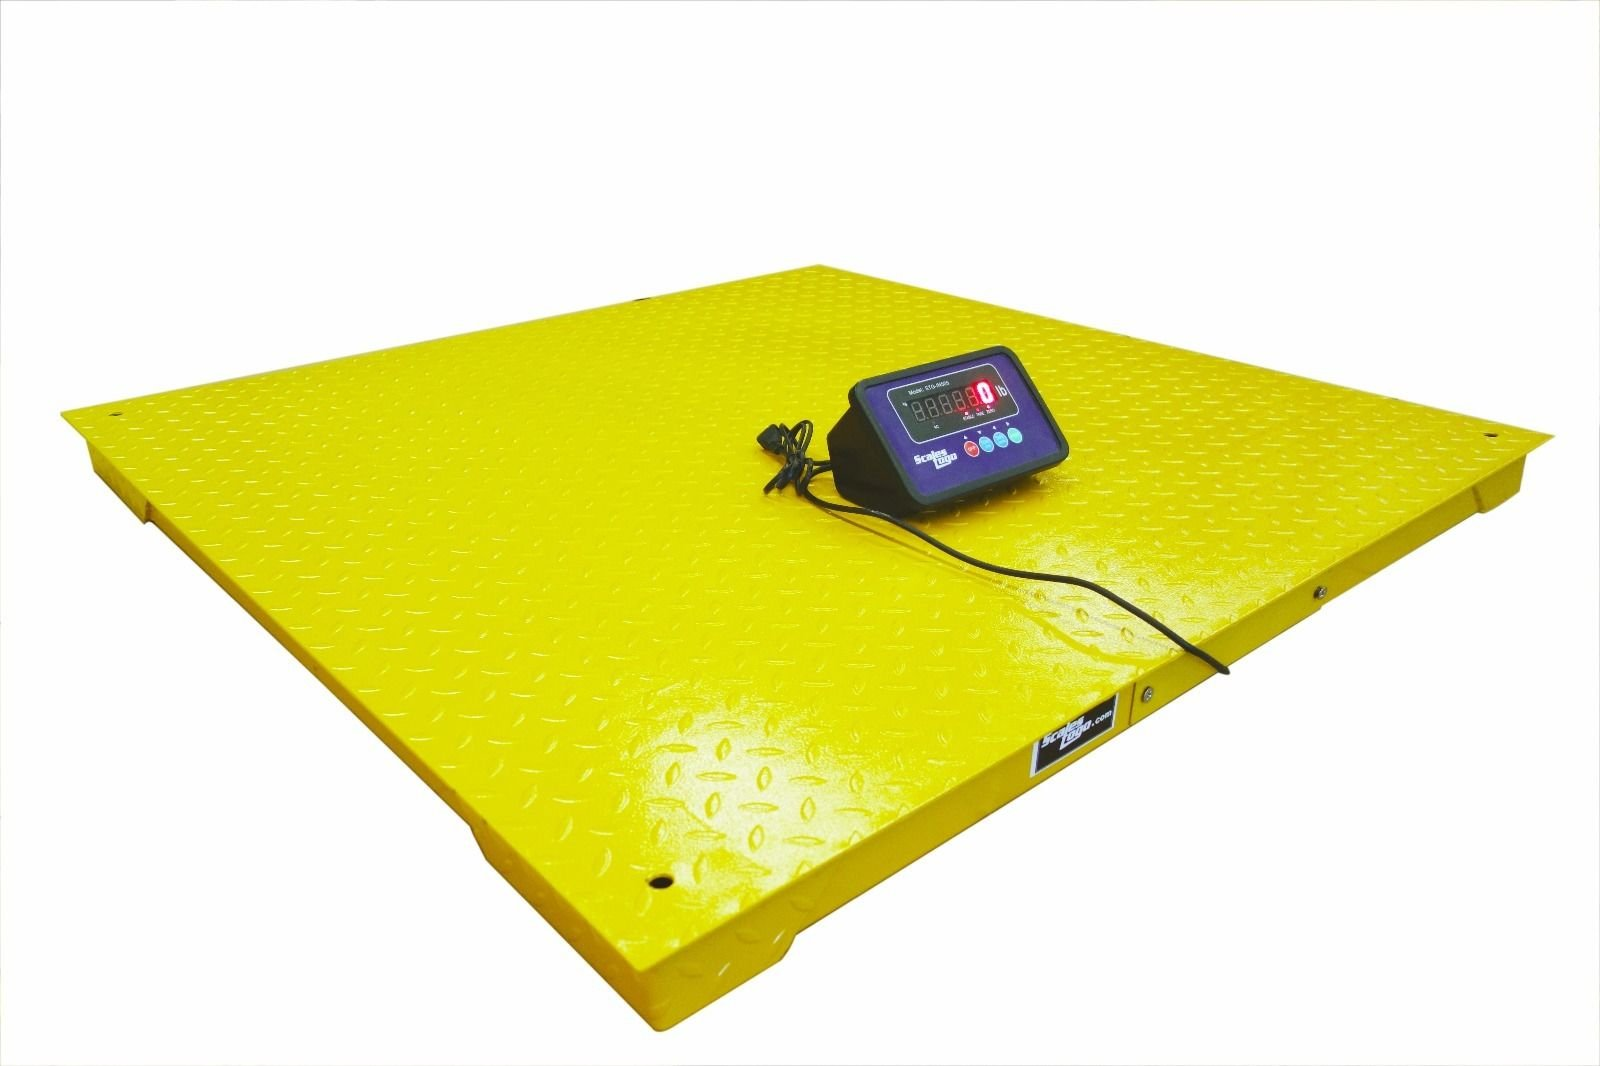 Heavy Duty 10,000 lb Floor Scale   40x40 with Indicator